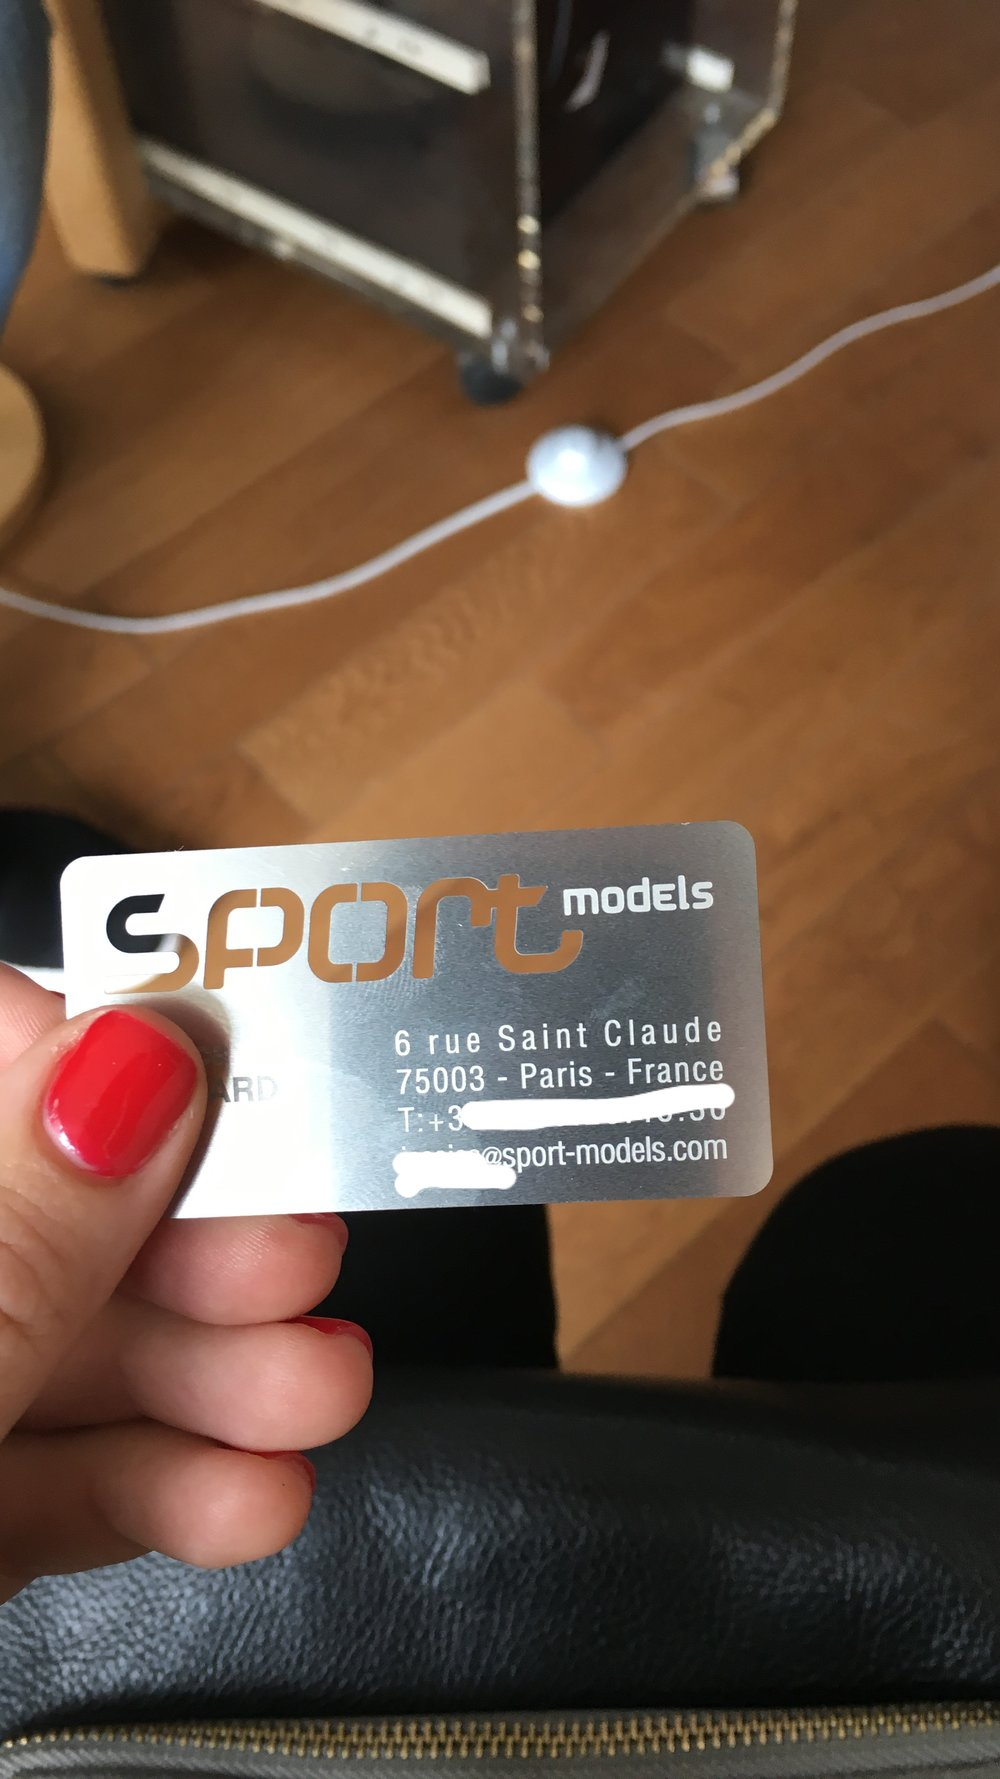 LOVE their blade looking business cards!